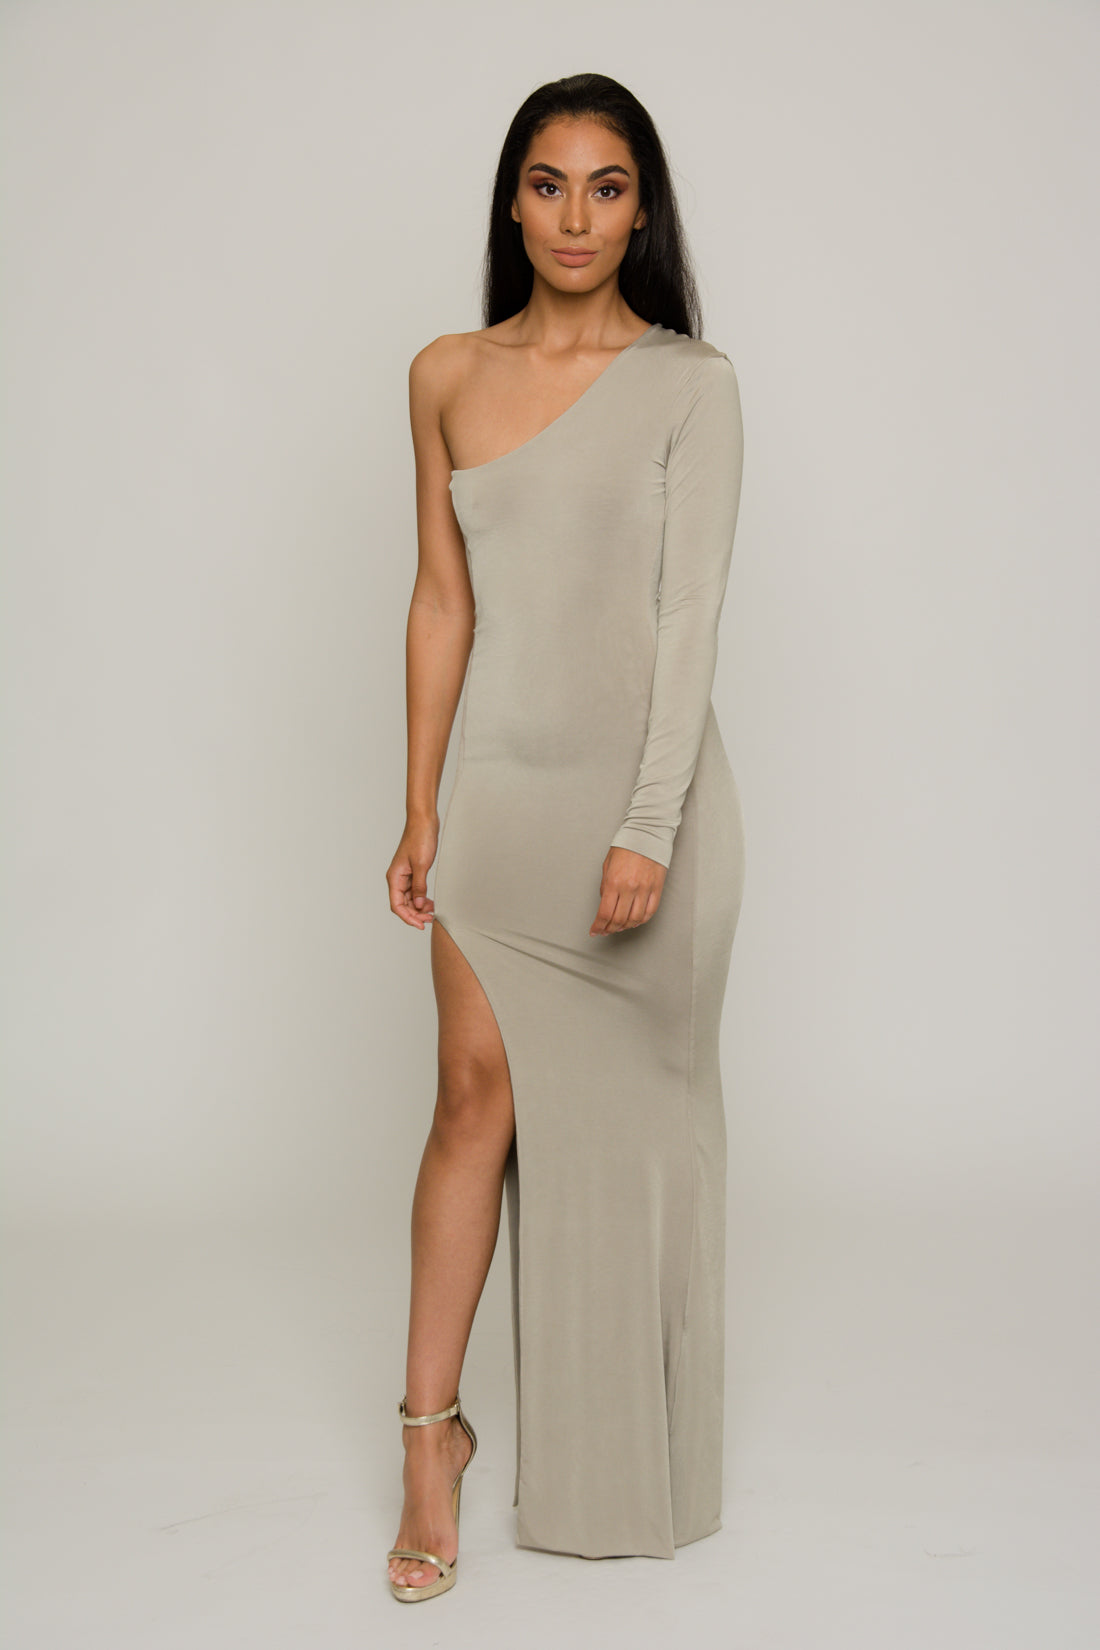 THE 'DIEM' DRESS (with split)